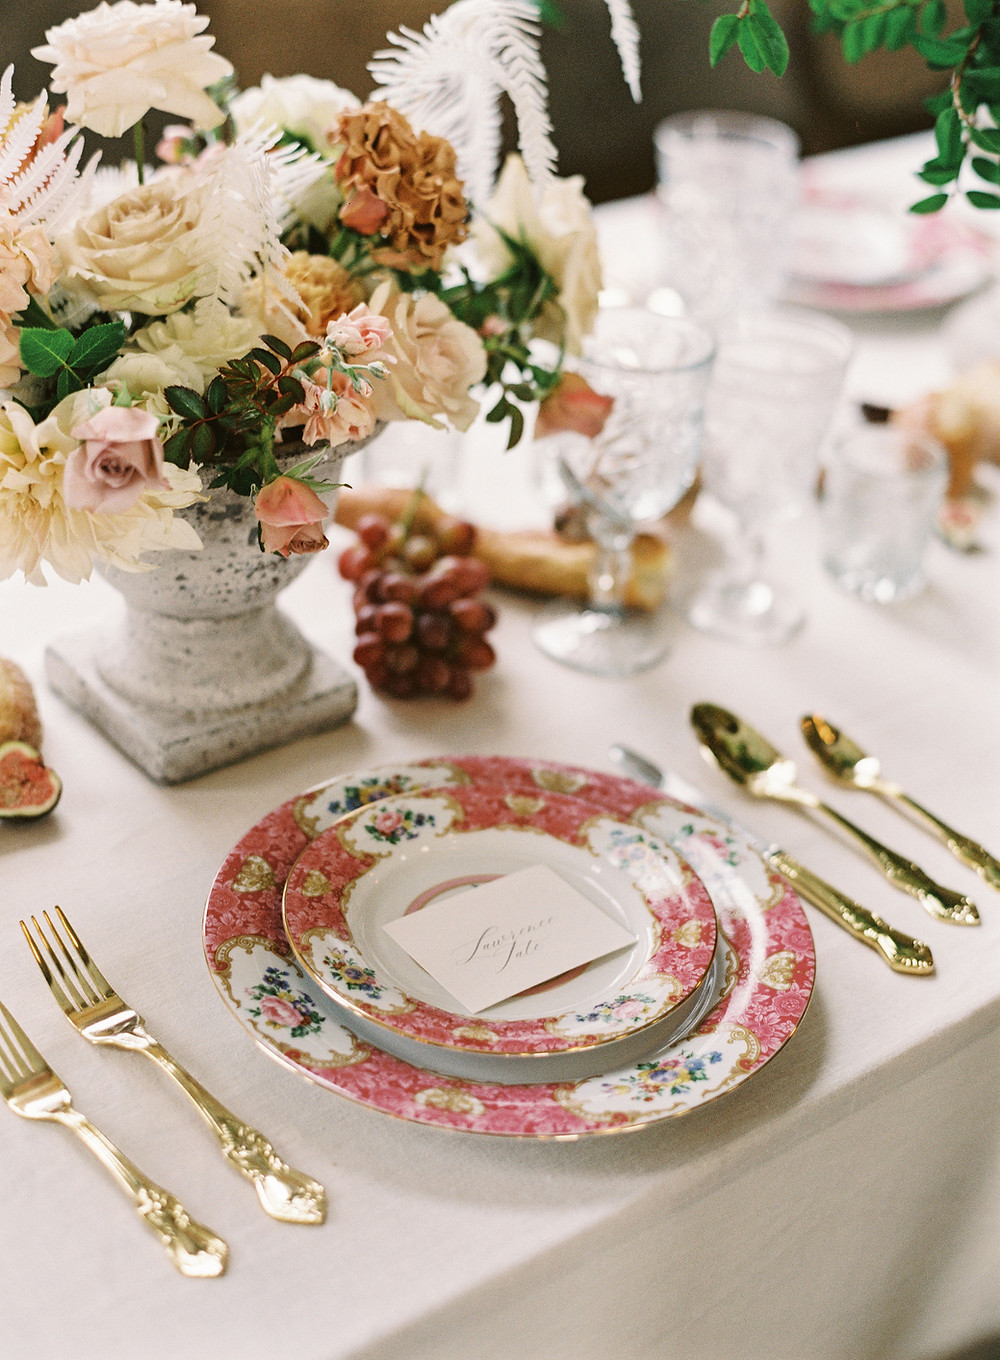 Leaf + petal, New Orleans, seated dinner, Bridgerton wedding, toffee roses, china place setting